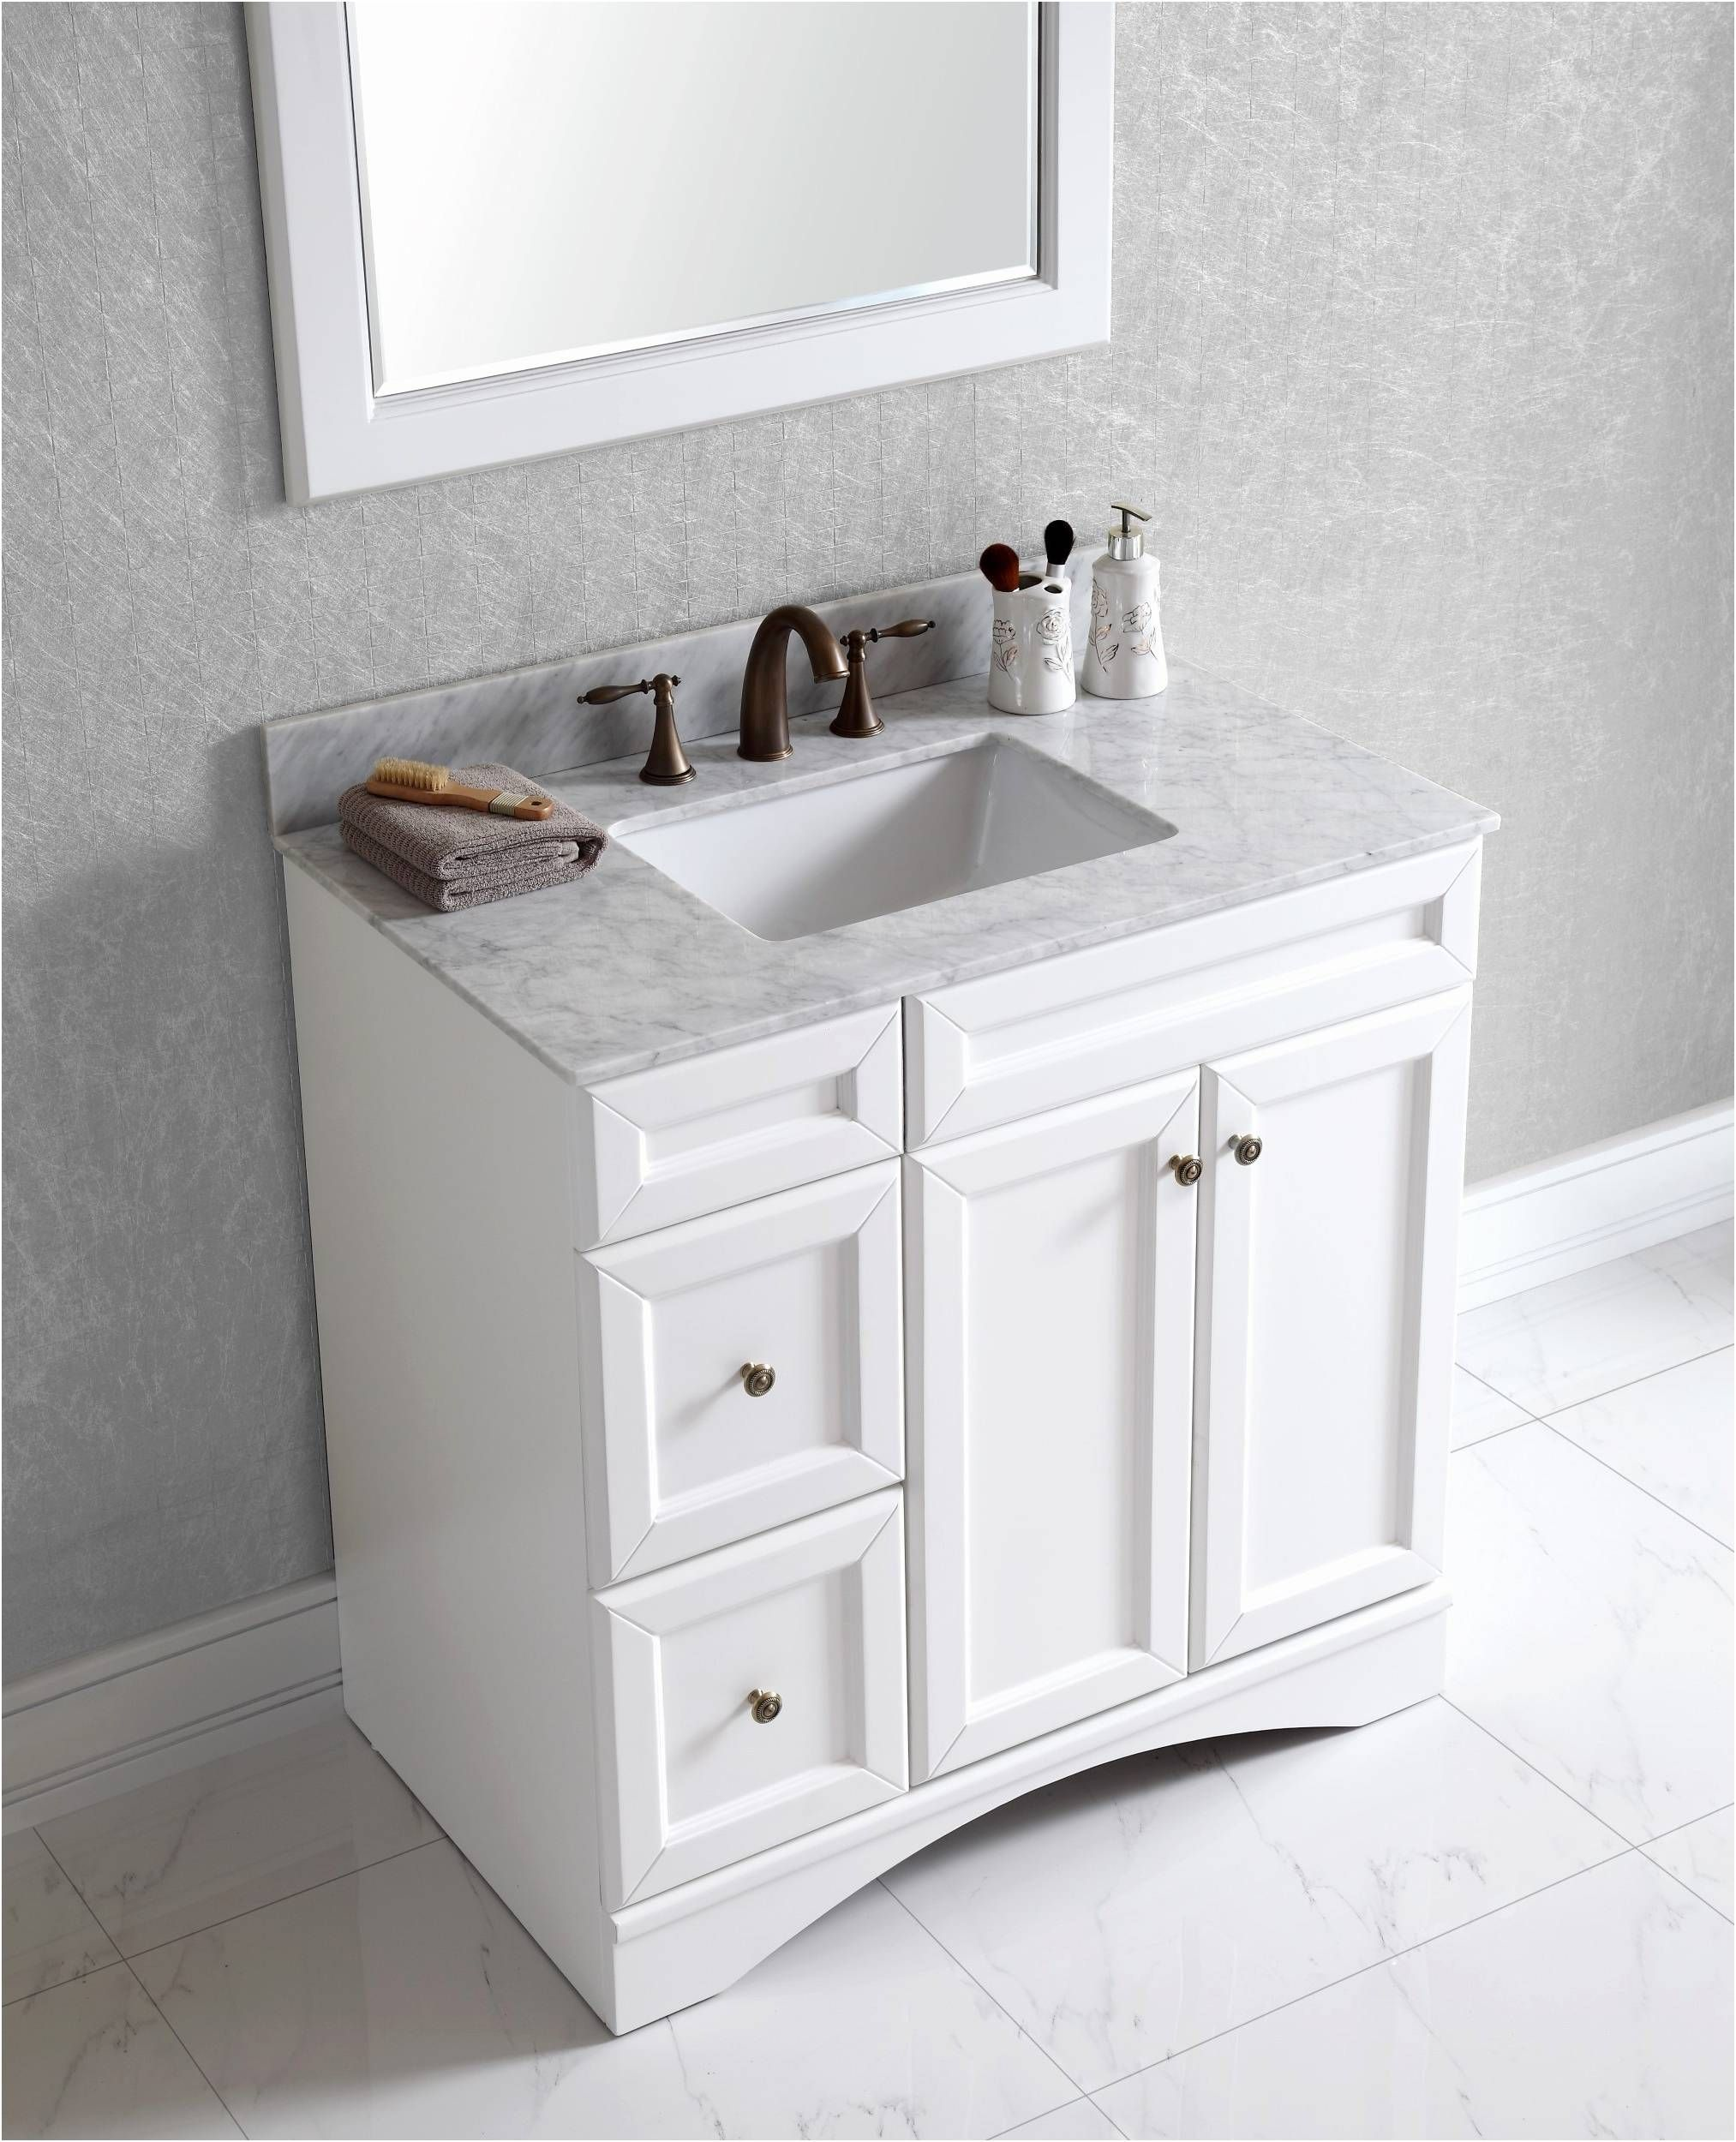 Cheap Vanity Beautiful Cheap Corner Vanity Units Cheap Vanity Bathroom Vanity Designs Buy Bathroom Vanity